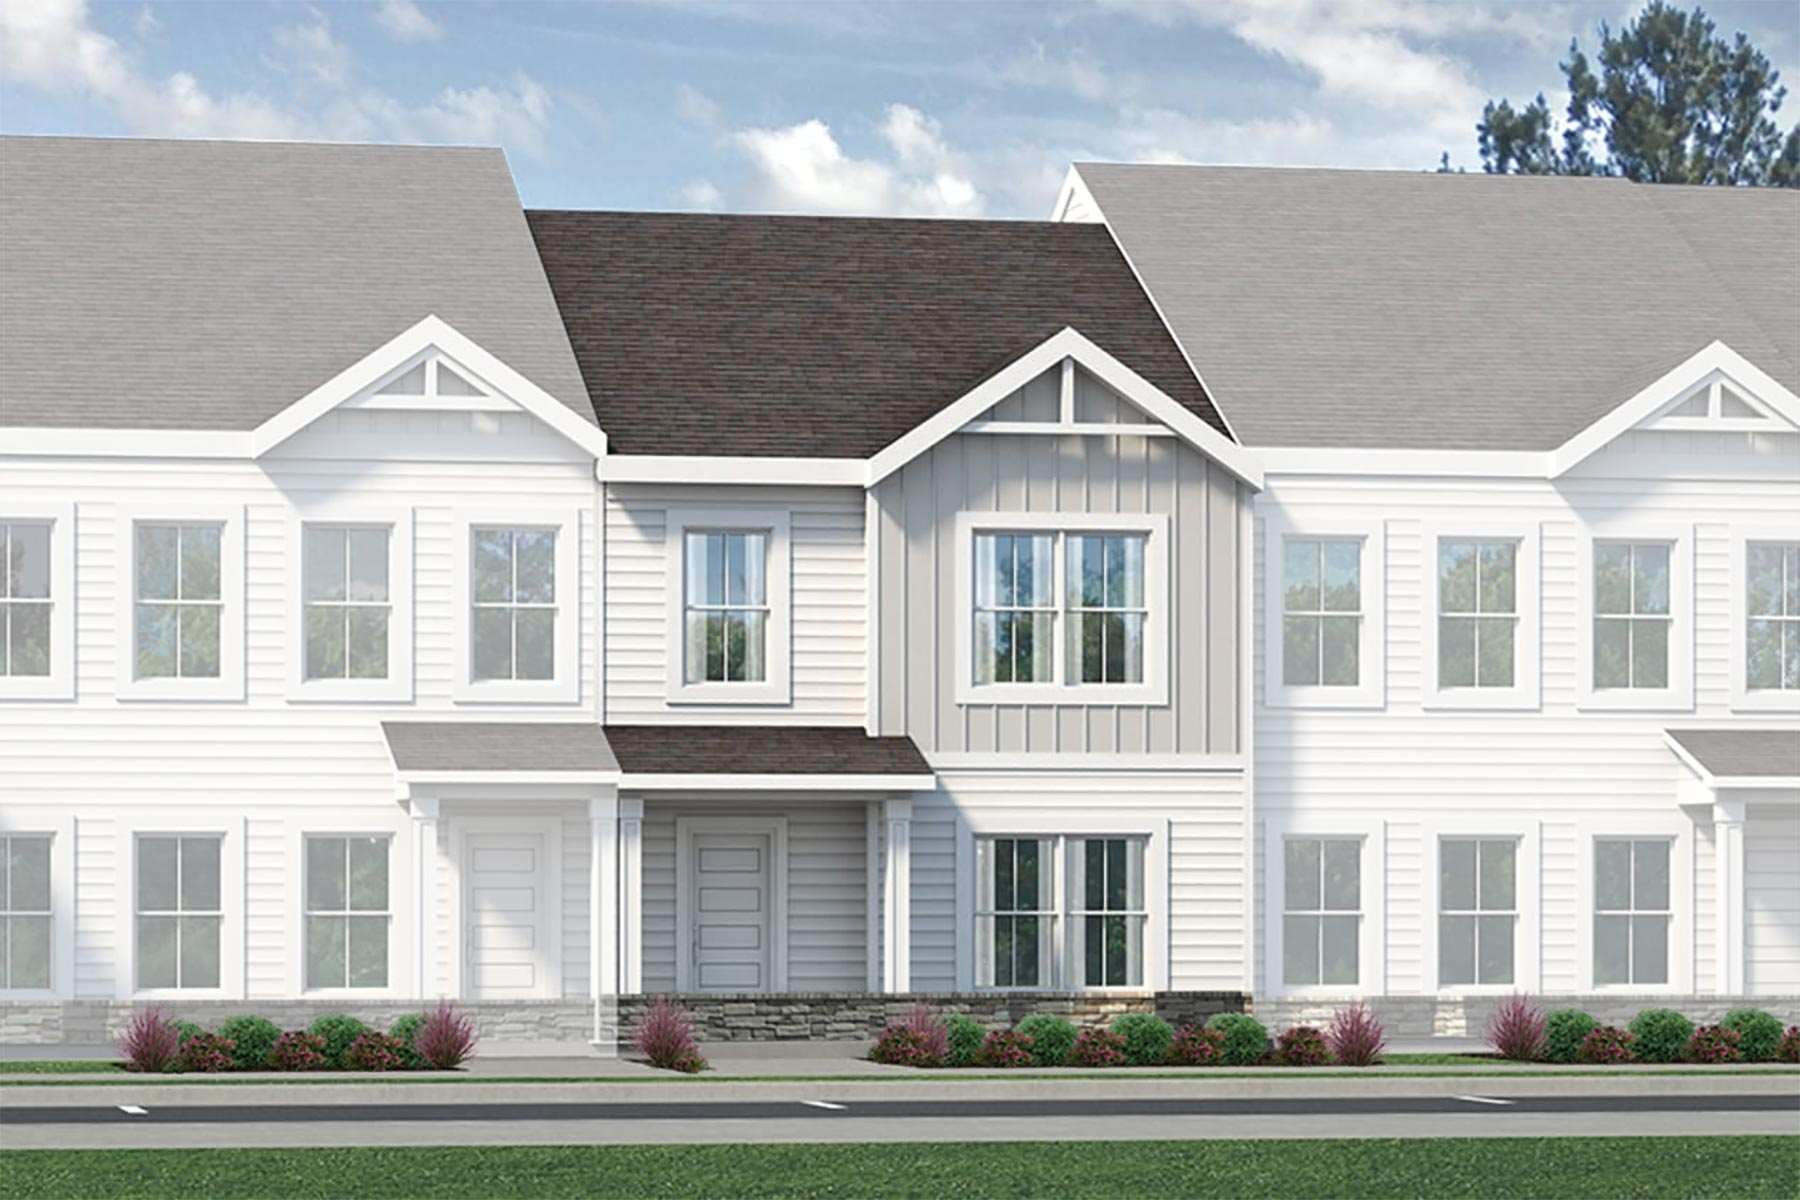 Osborn Plan TownHomes at Bengal Townes in Fuquay-Varina North Carolina by Mattamy Homes